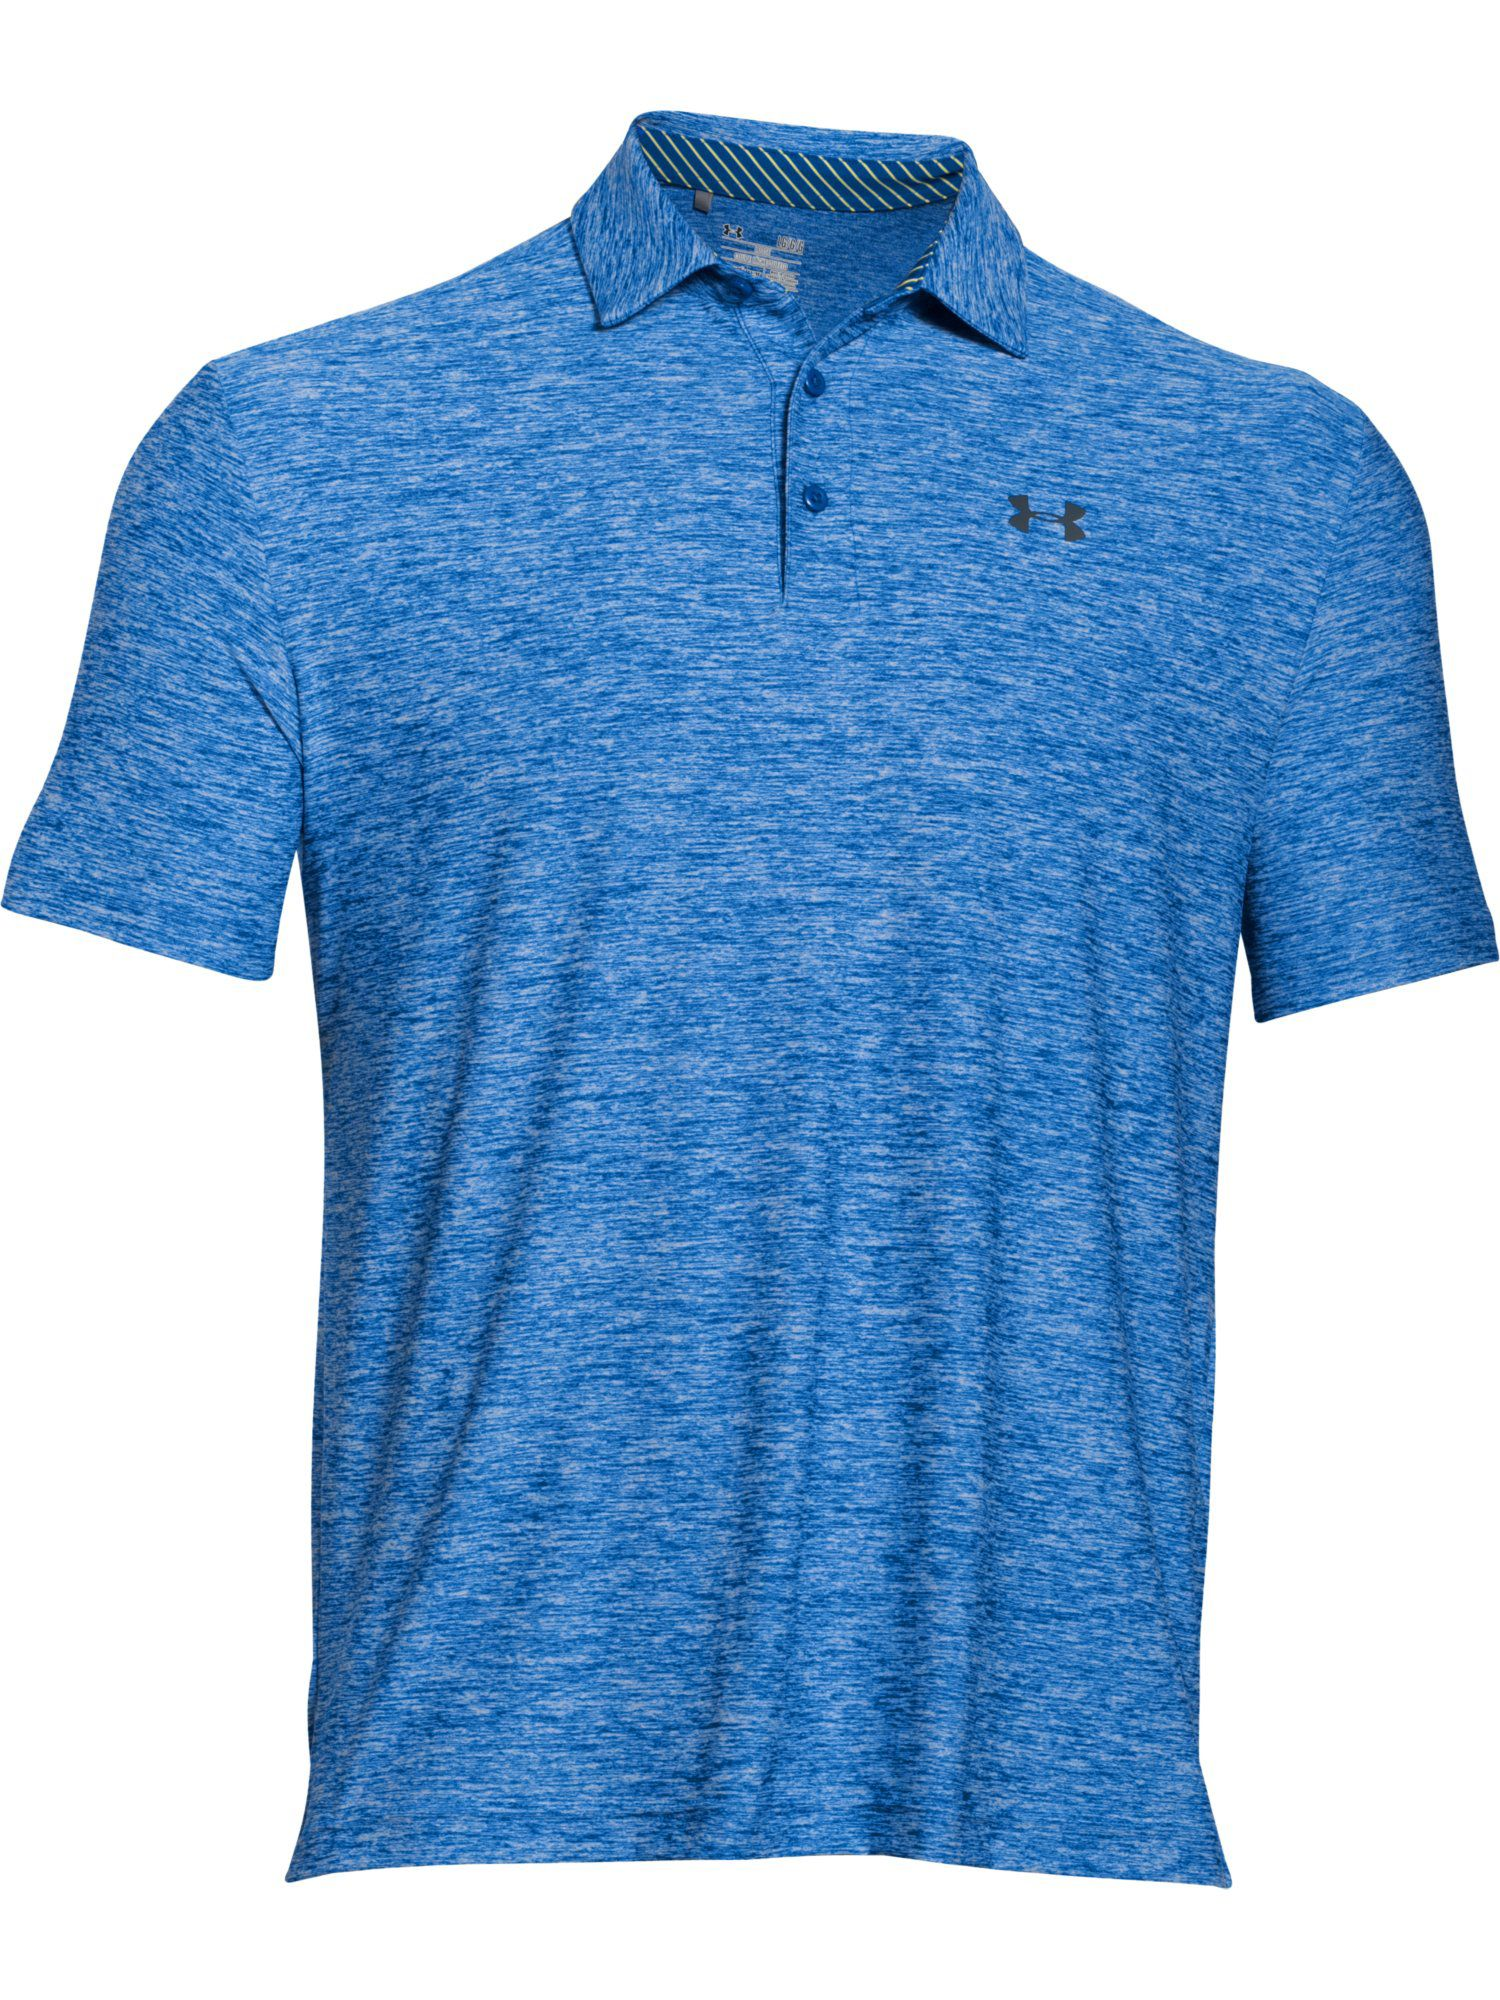 Men's Under Armour Playoff Polo Shirt, Mid Blue